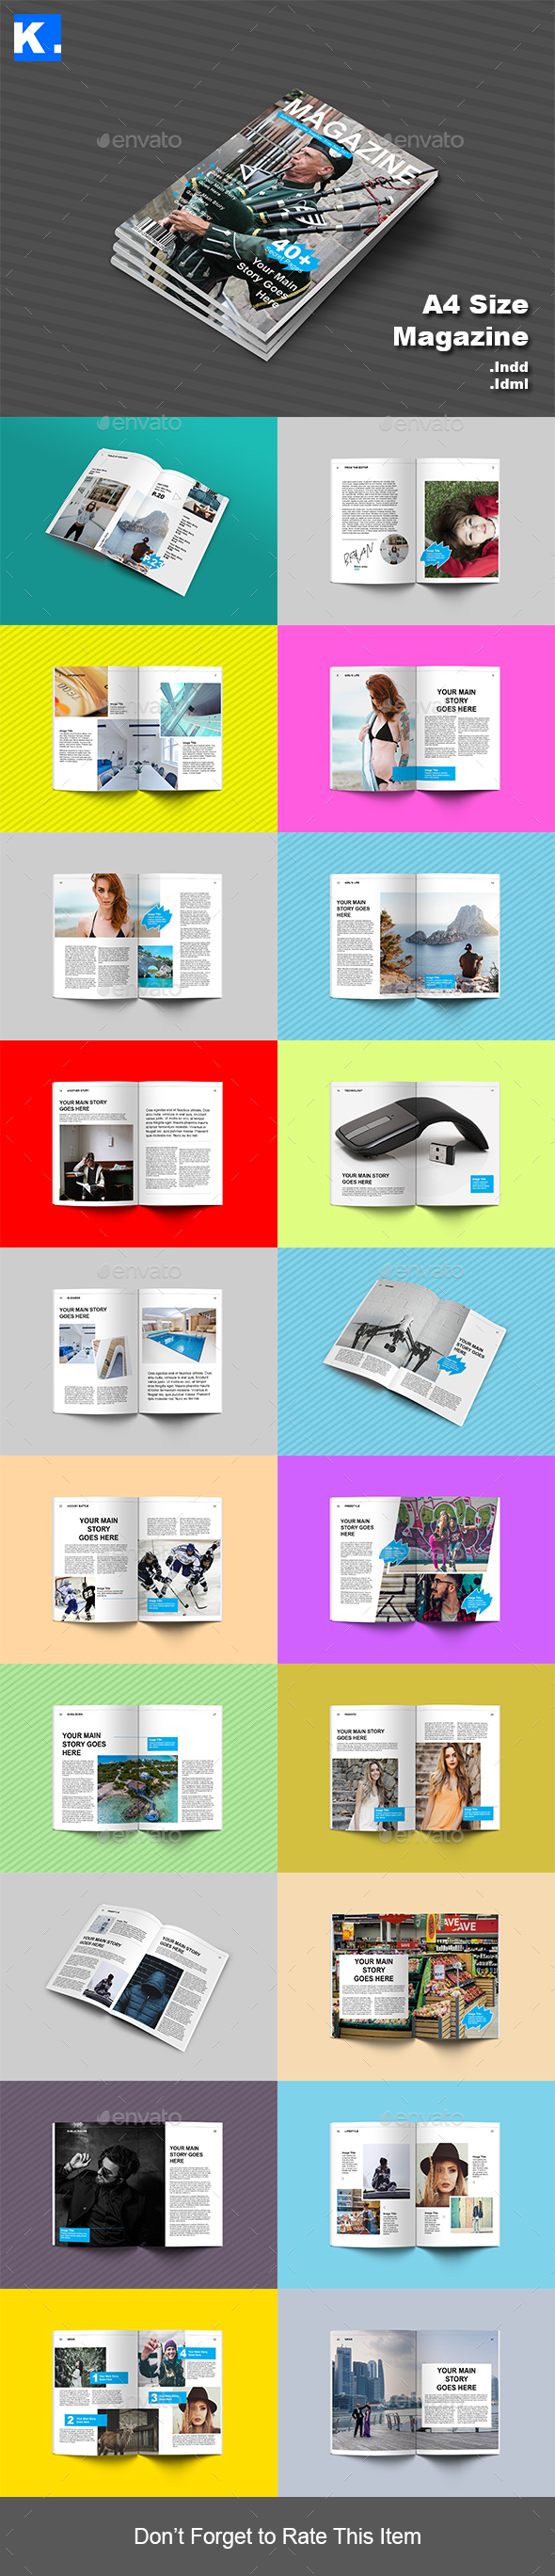 Indesign Magazine Template 1 - Magazines Print Templates